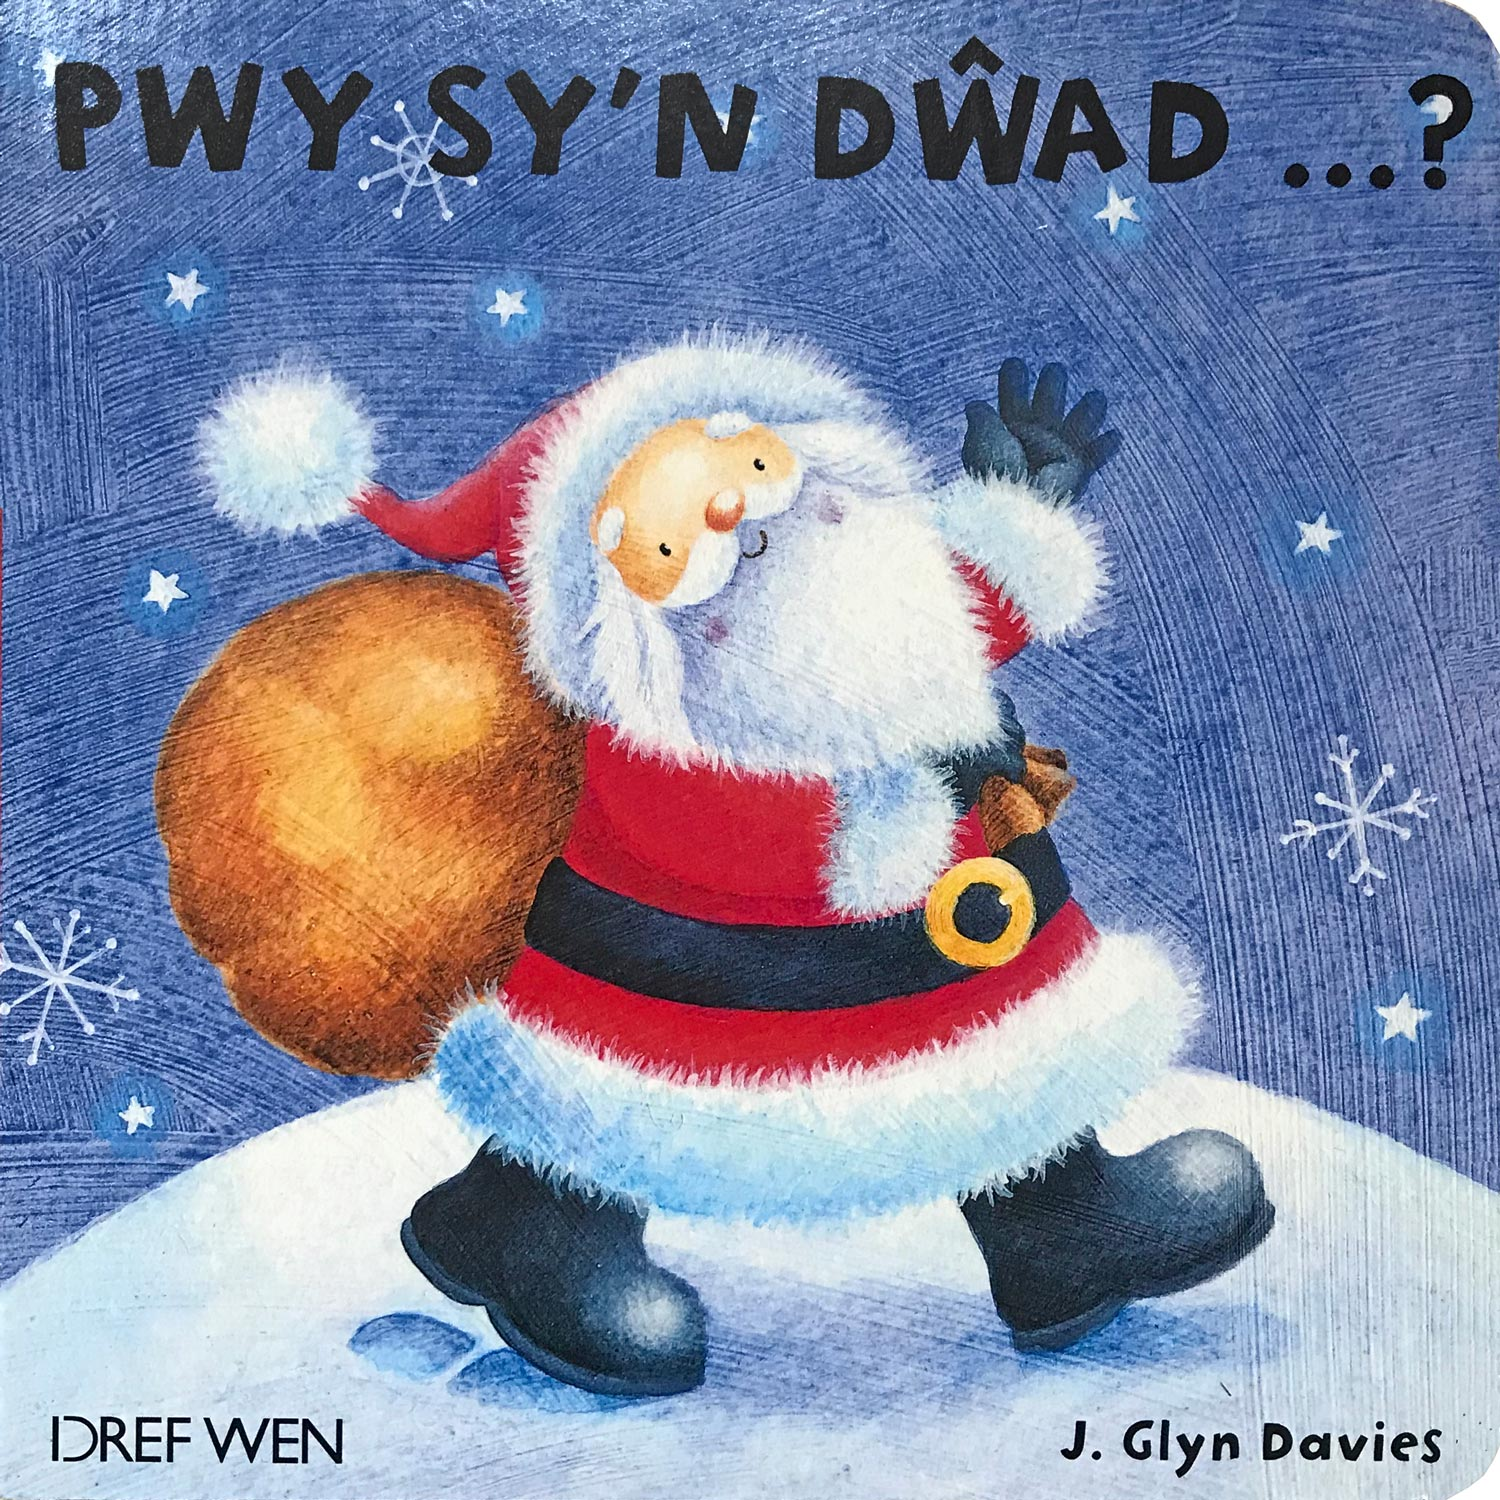 Pwy sy'n dwad... Sion Corn! Welsh Christmas Song Book-The Welsh Gift Shop